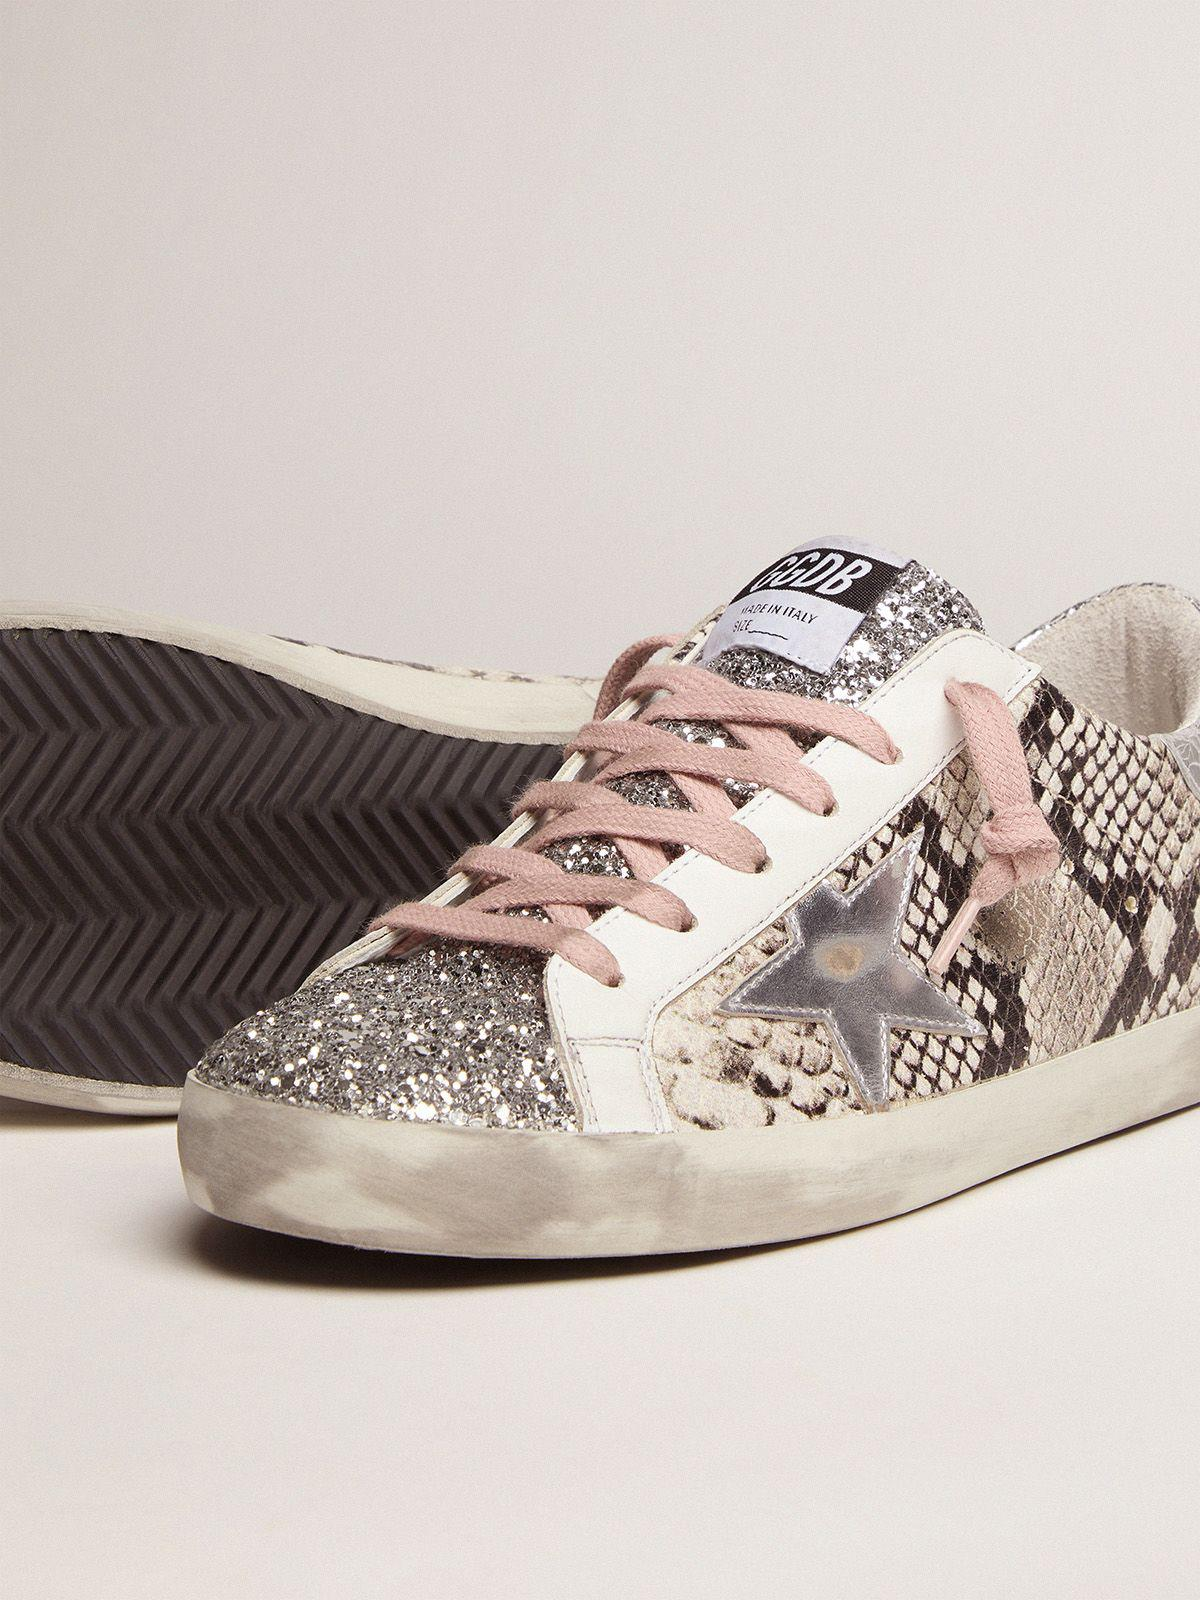 Super-Star LTD sneakers with snake print and glitter 2